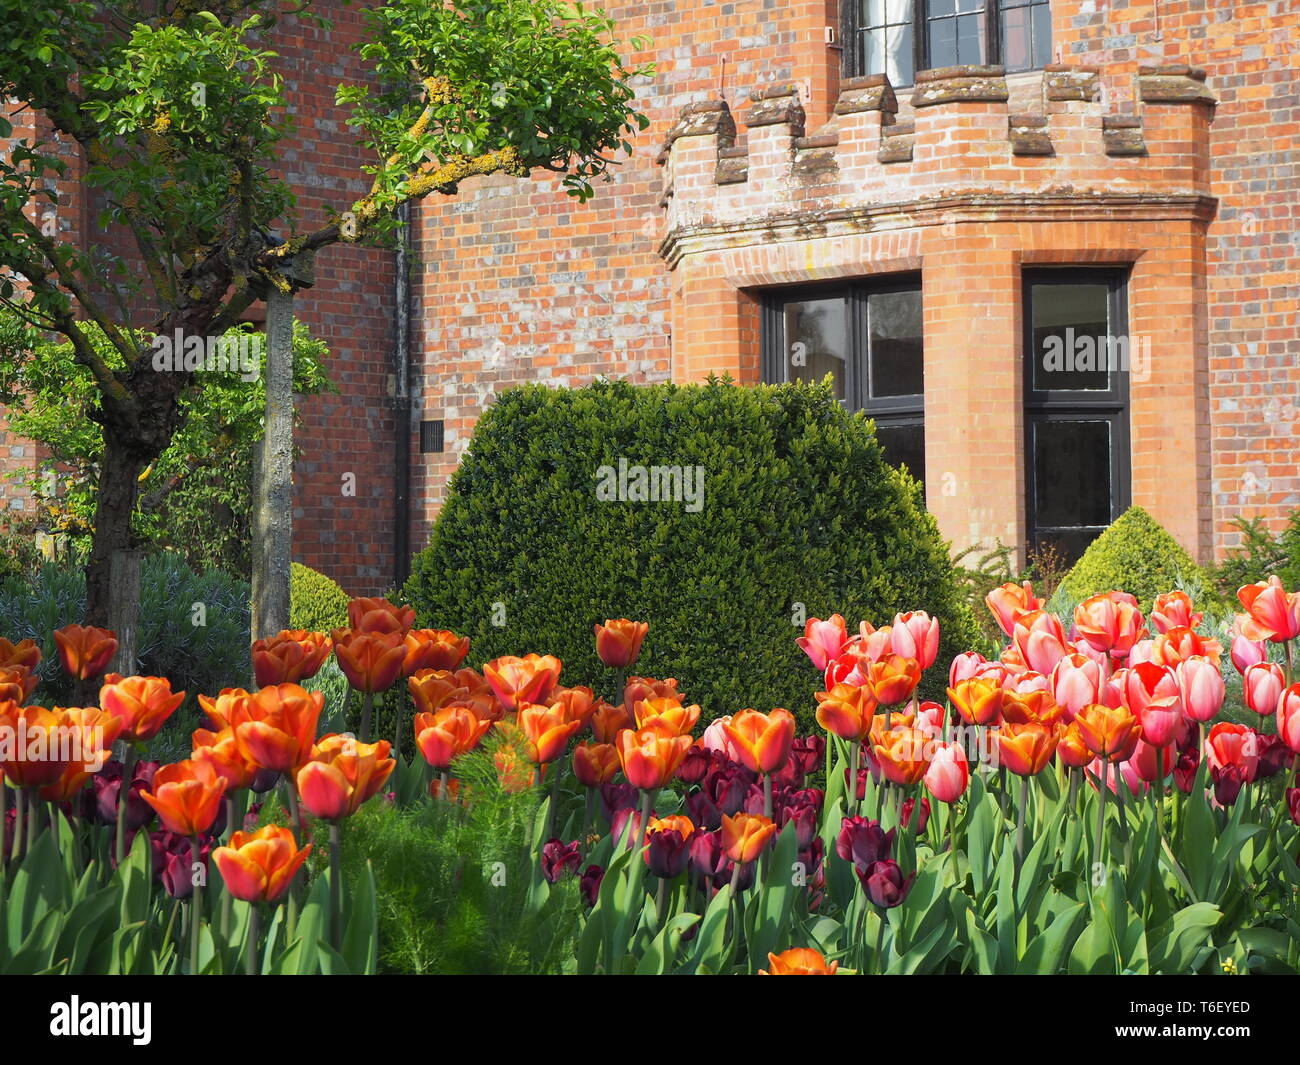 Chenies Manor House and Gardens in April showing colourful tulip borders framing the house and bay window.. - Stock Image